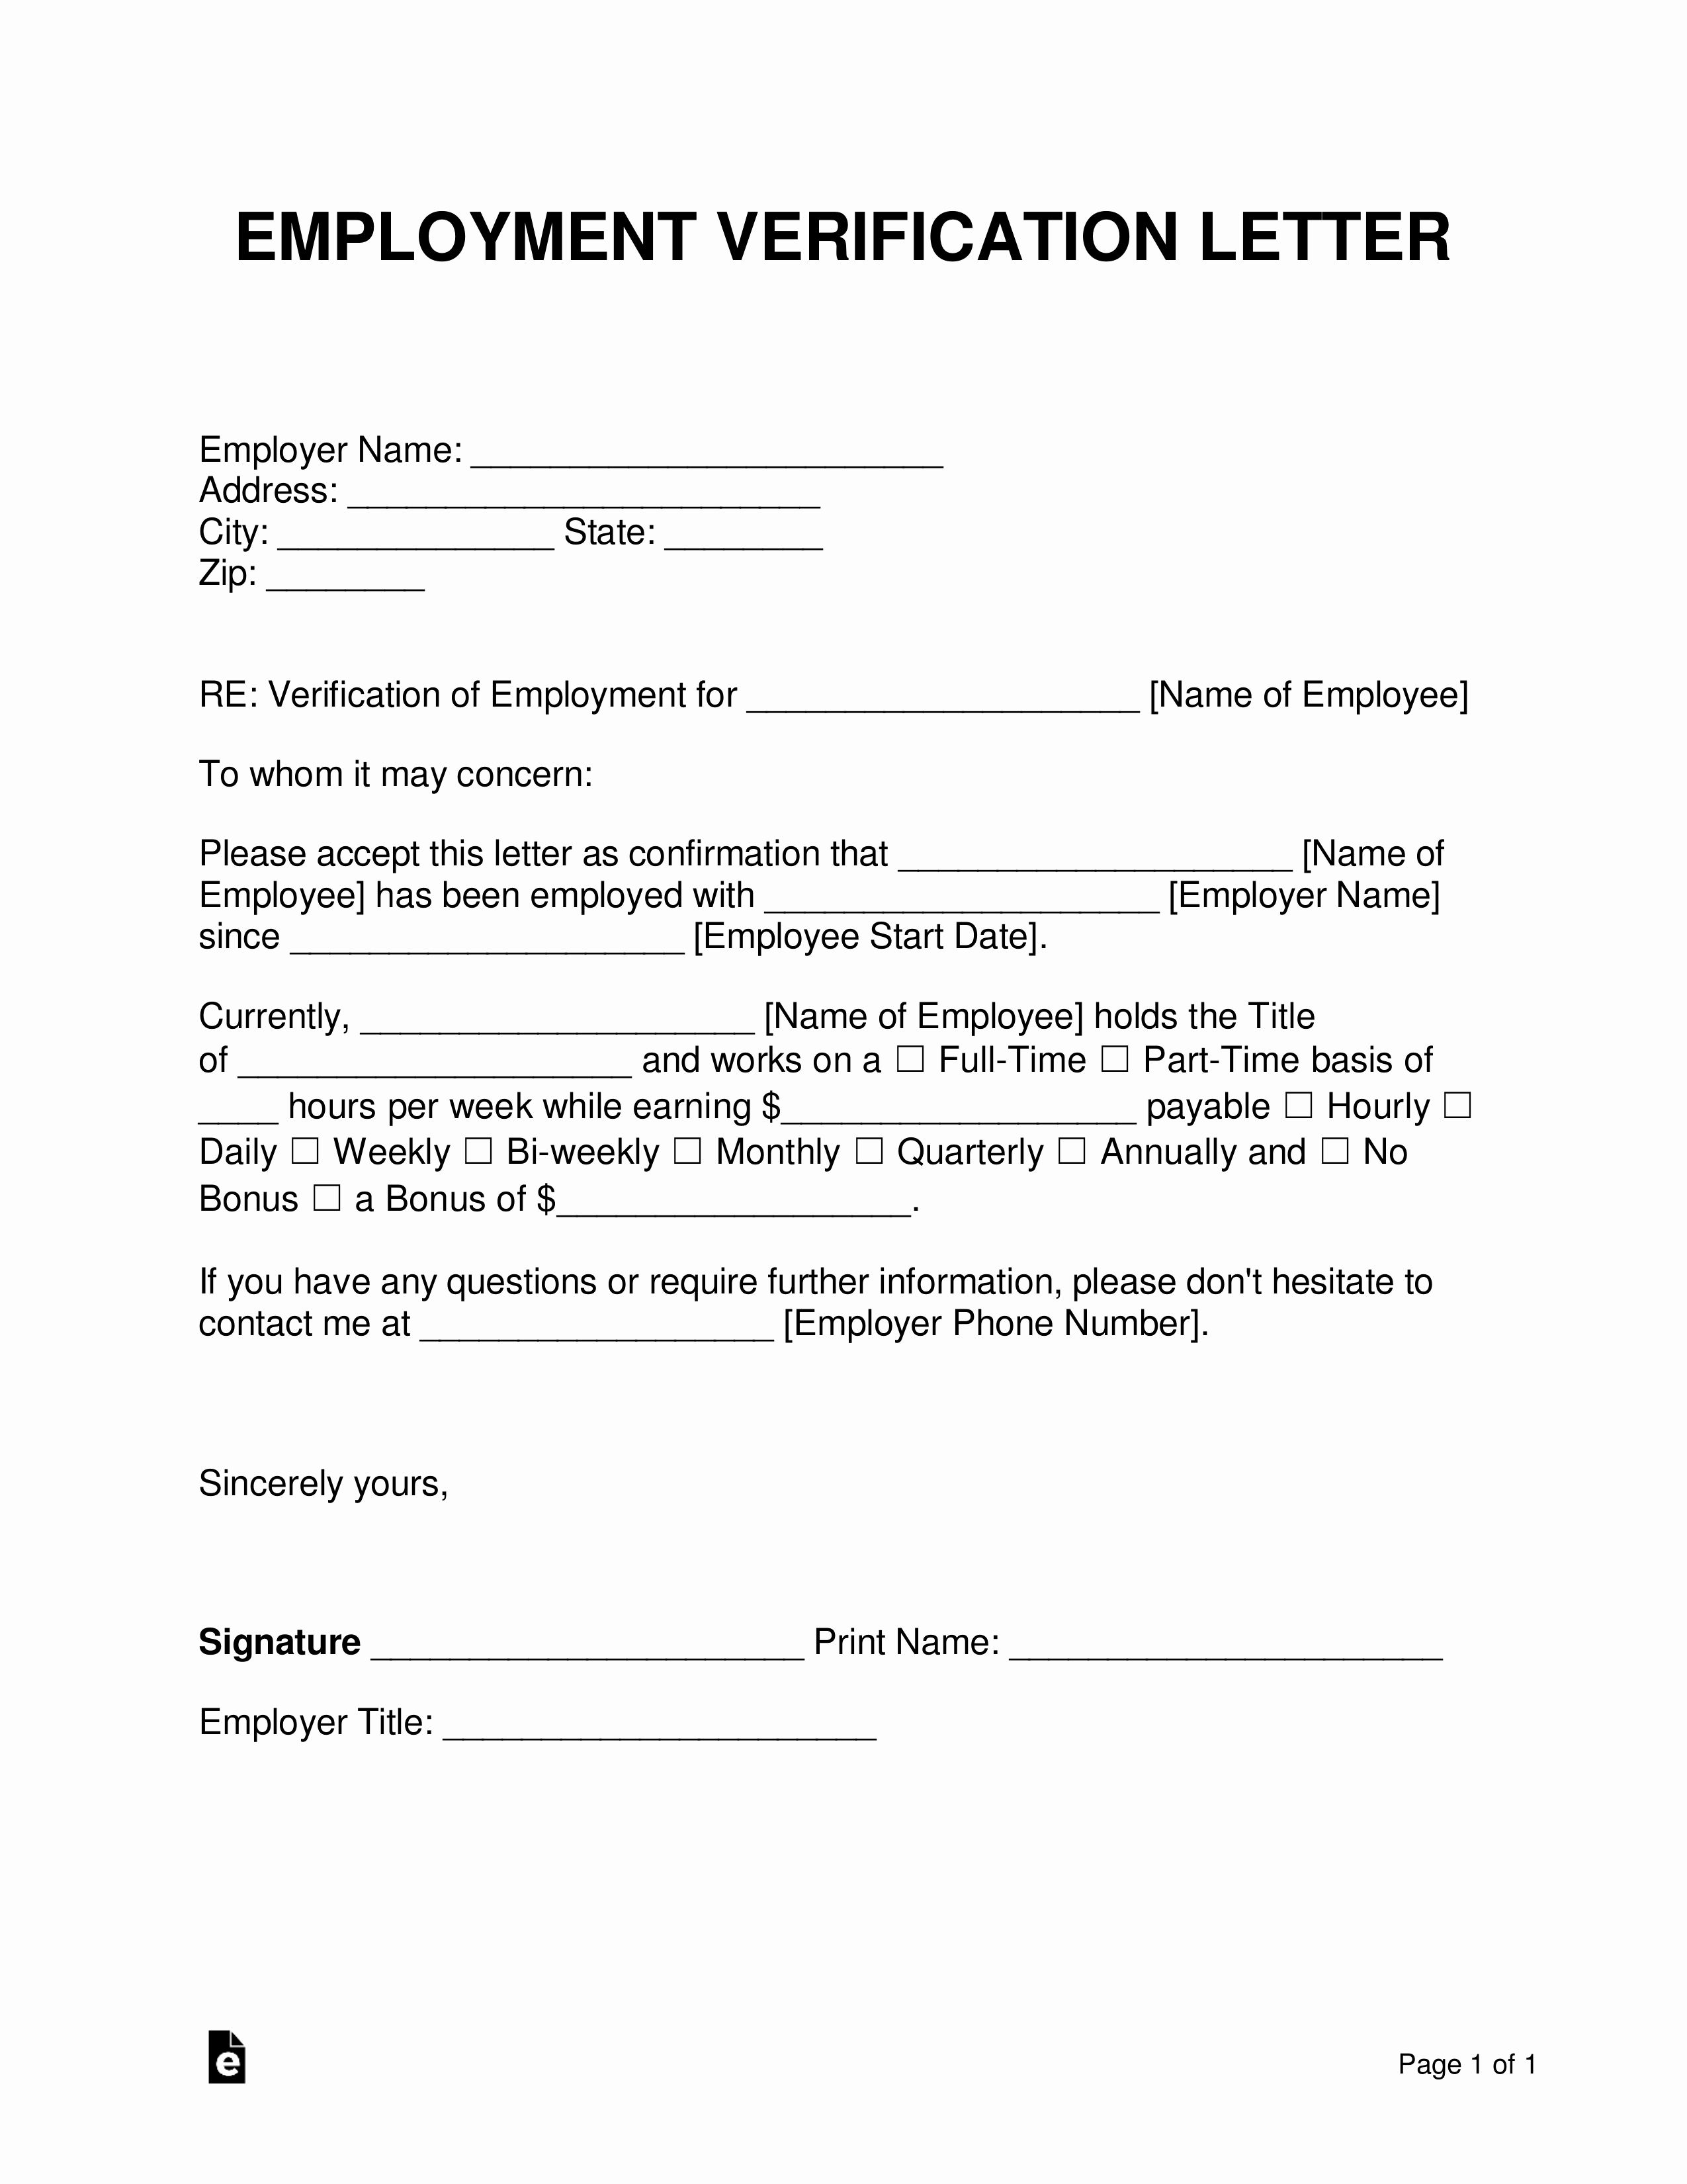 Employment Verification form Template Awesome Free